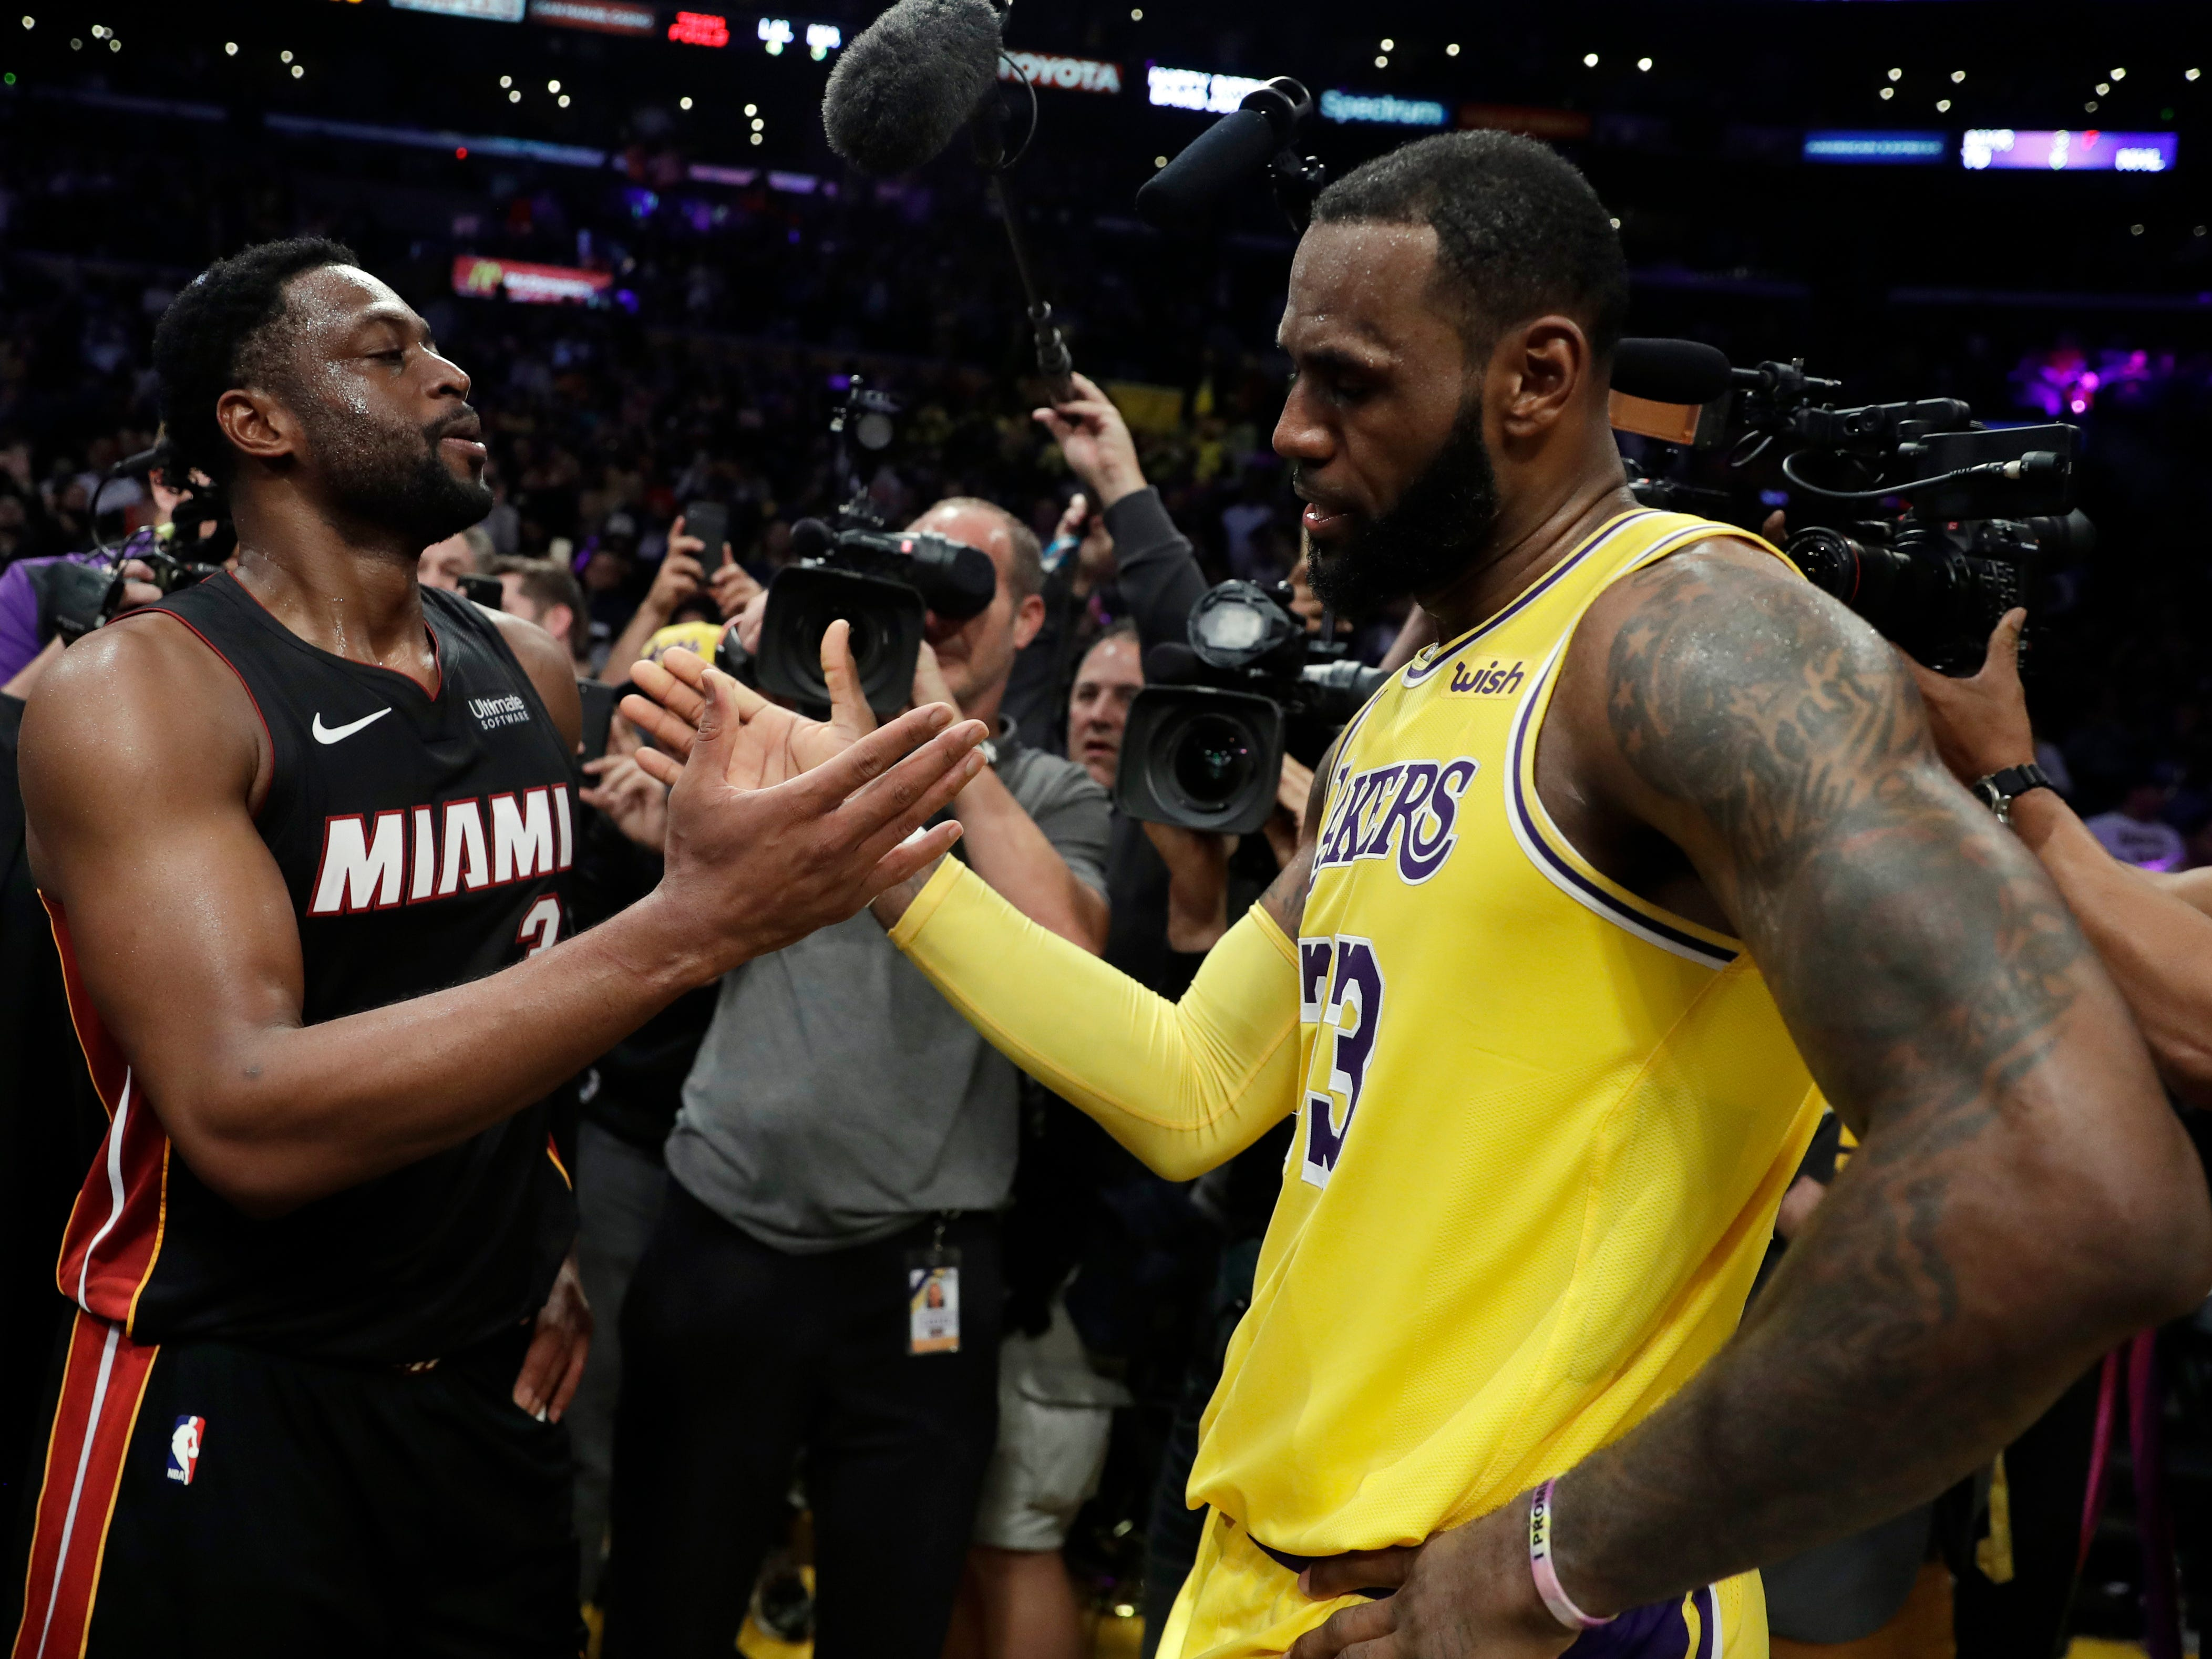 Dec. 10, 2018: Dwyane Wade shakes hands with LeBron James after the Lakes defeated the Heat, 108-105, at Staples Center in Los Angeles.